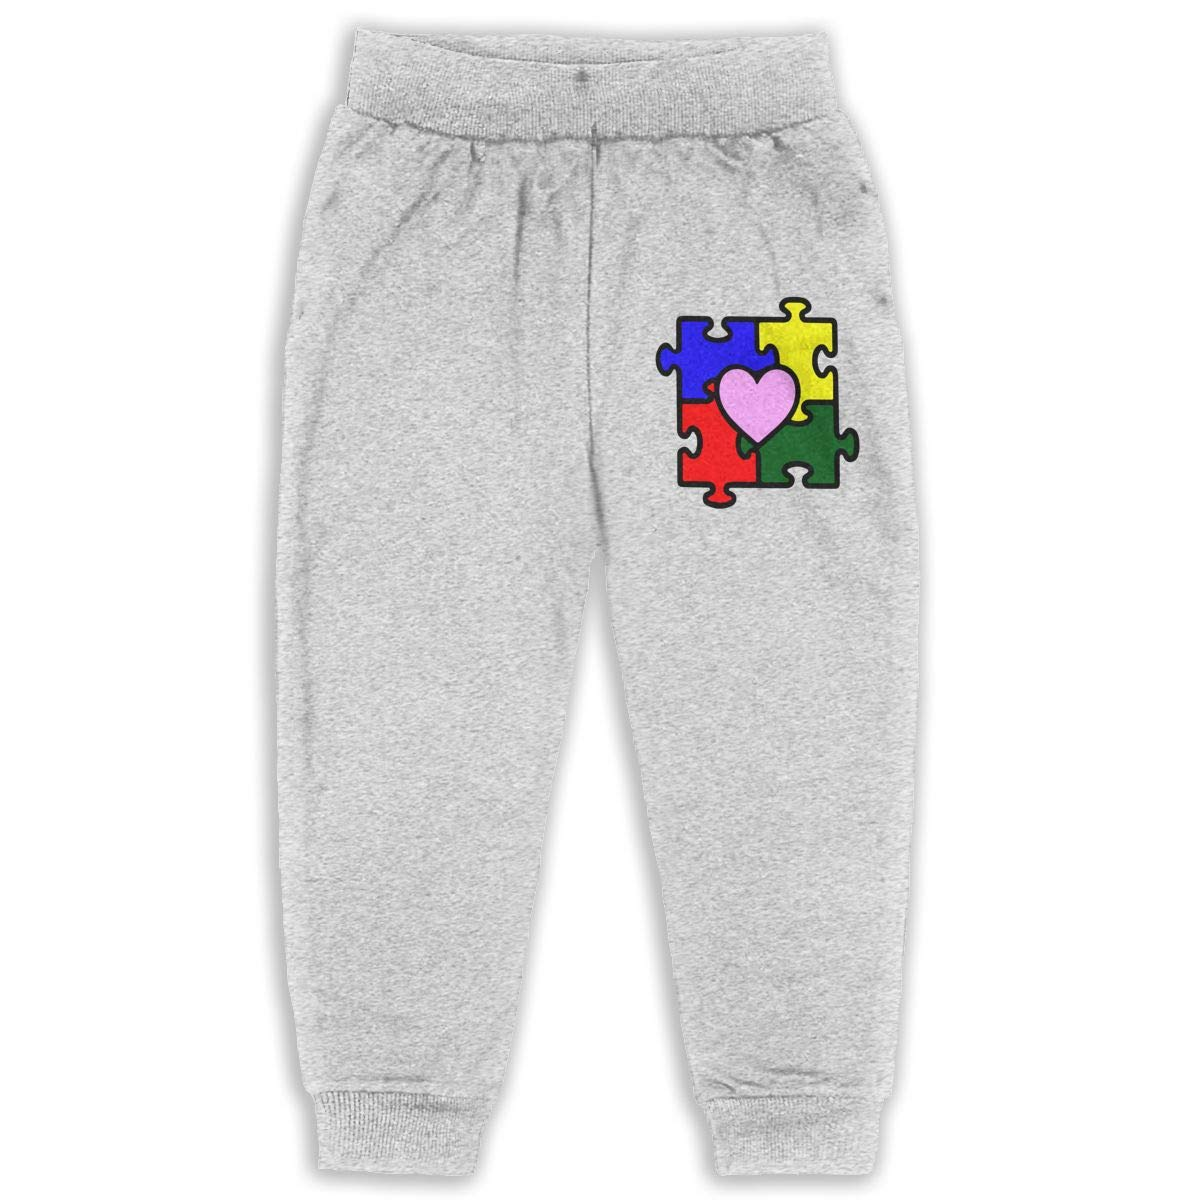 Classic Boys Girls Jersey Pant Autism Puzzle Piece SVG is A Wonderful SVG Your Autism Crafting Unisex Kid Toddler Pants